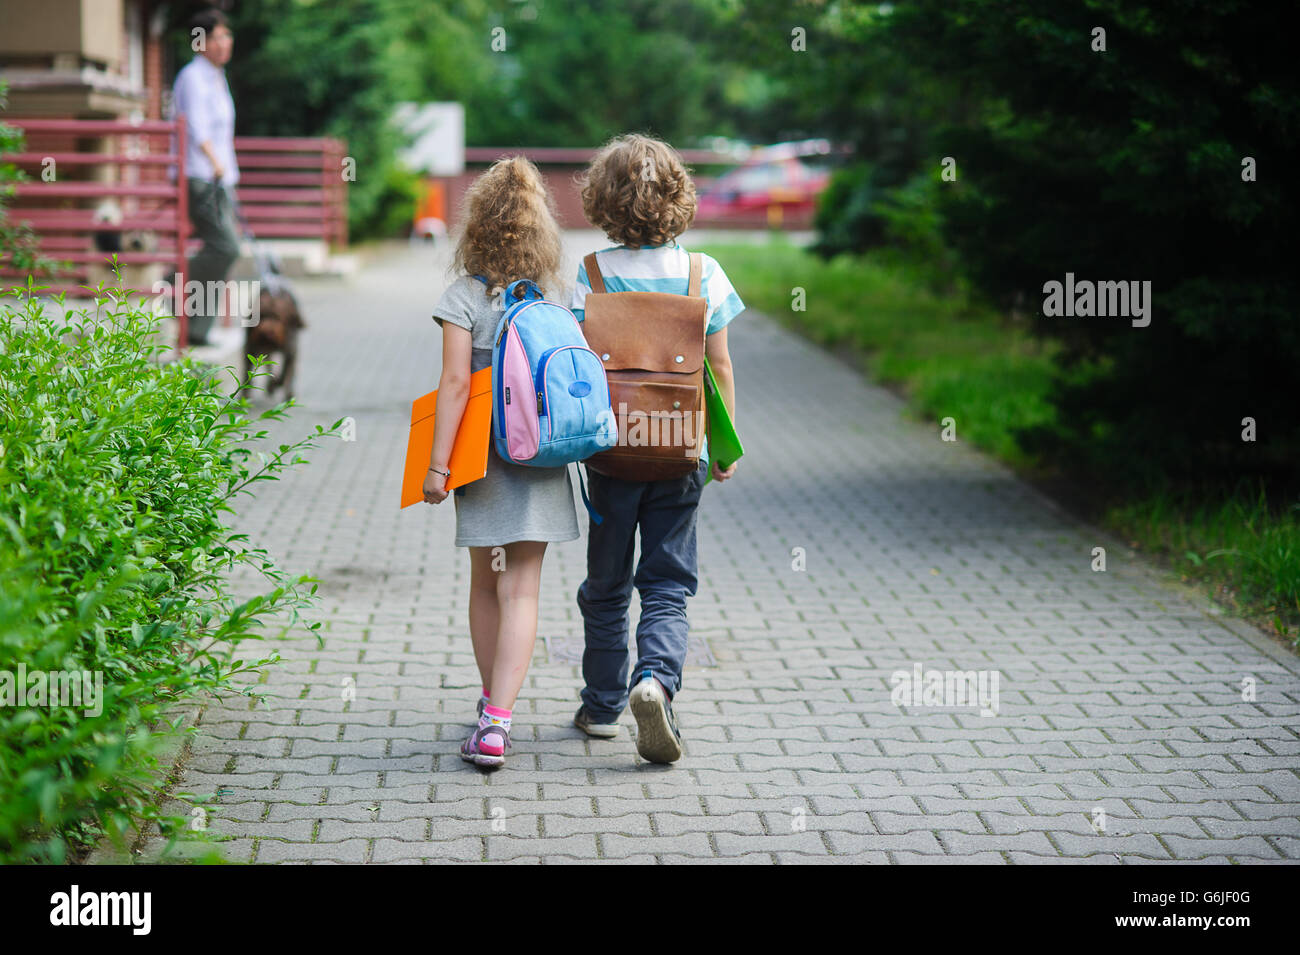 Two pupils of primary school go hand in hand. Boy and girl with school bags behind the back. Beginning of school - Stock Image